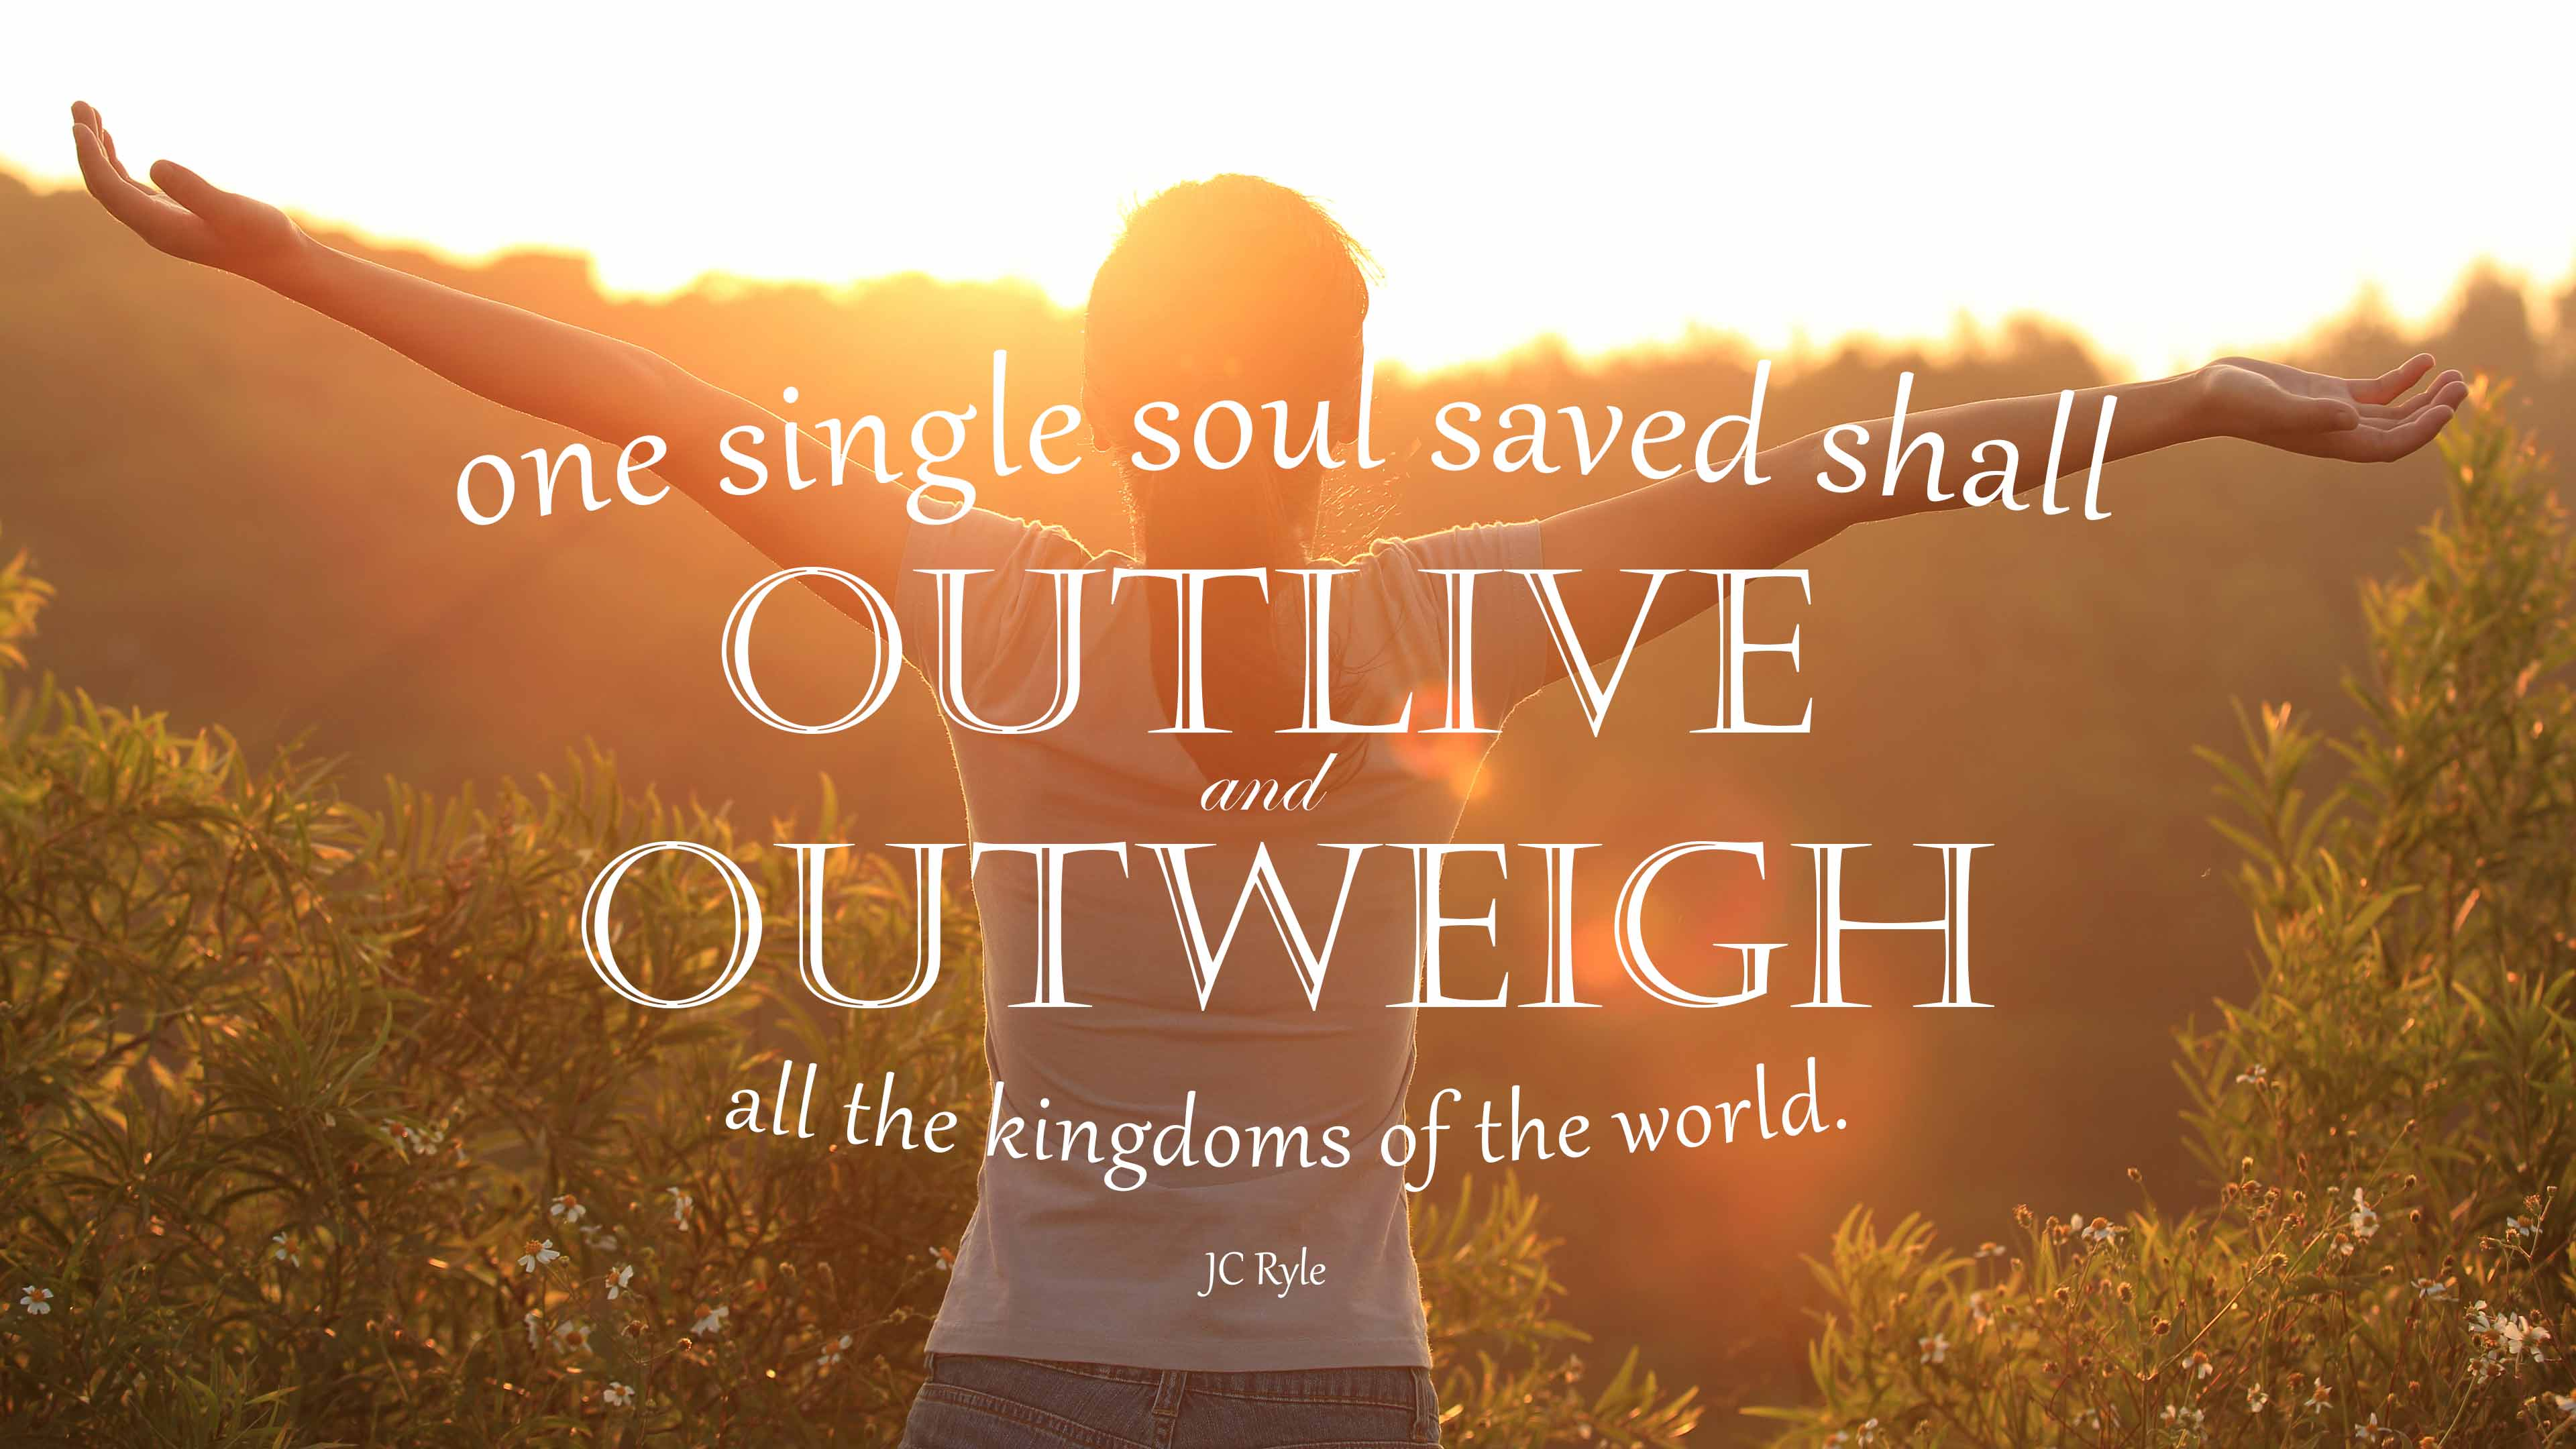 One single soul saved shall outlive and outweigh all the kingdoms of the world - JC Ryle